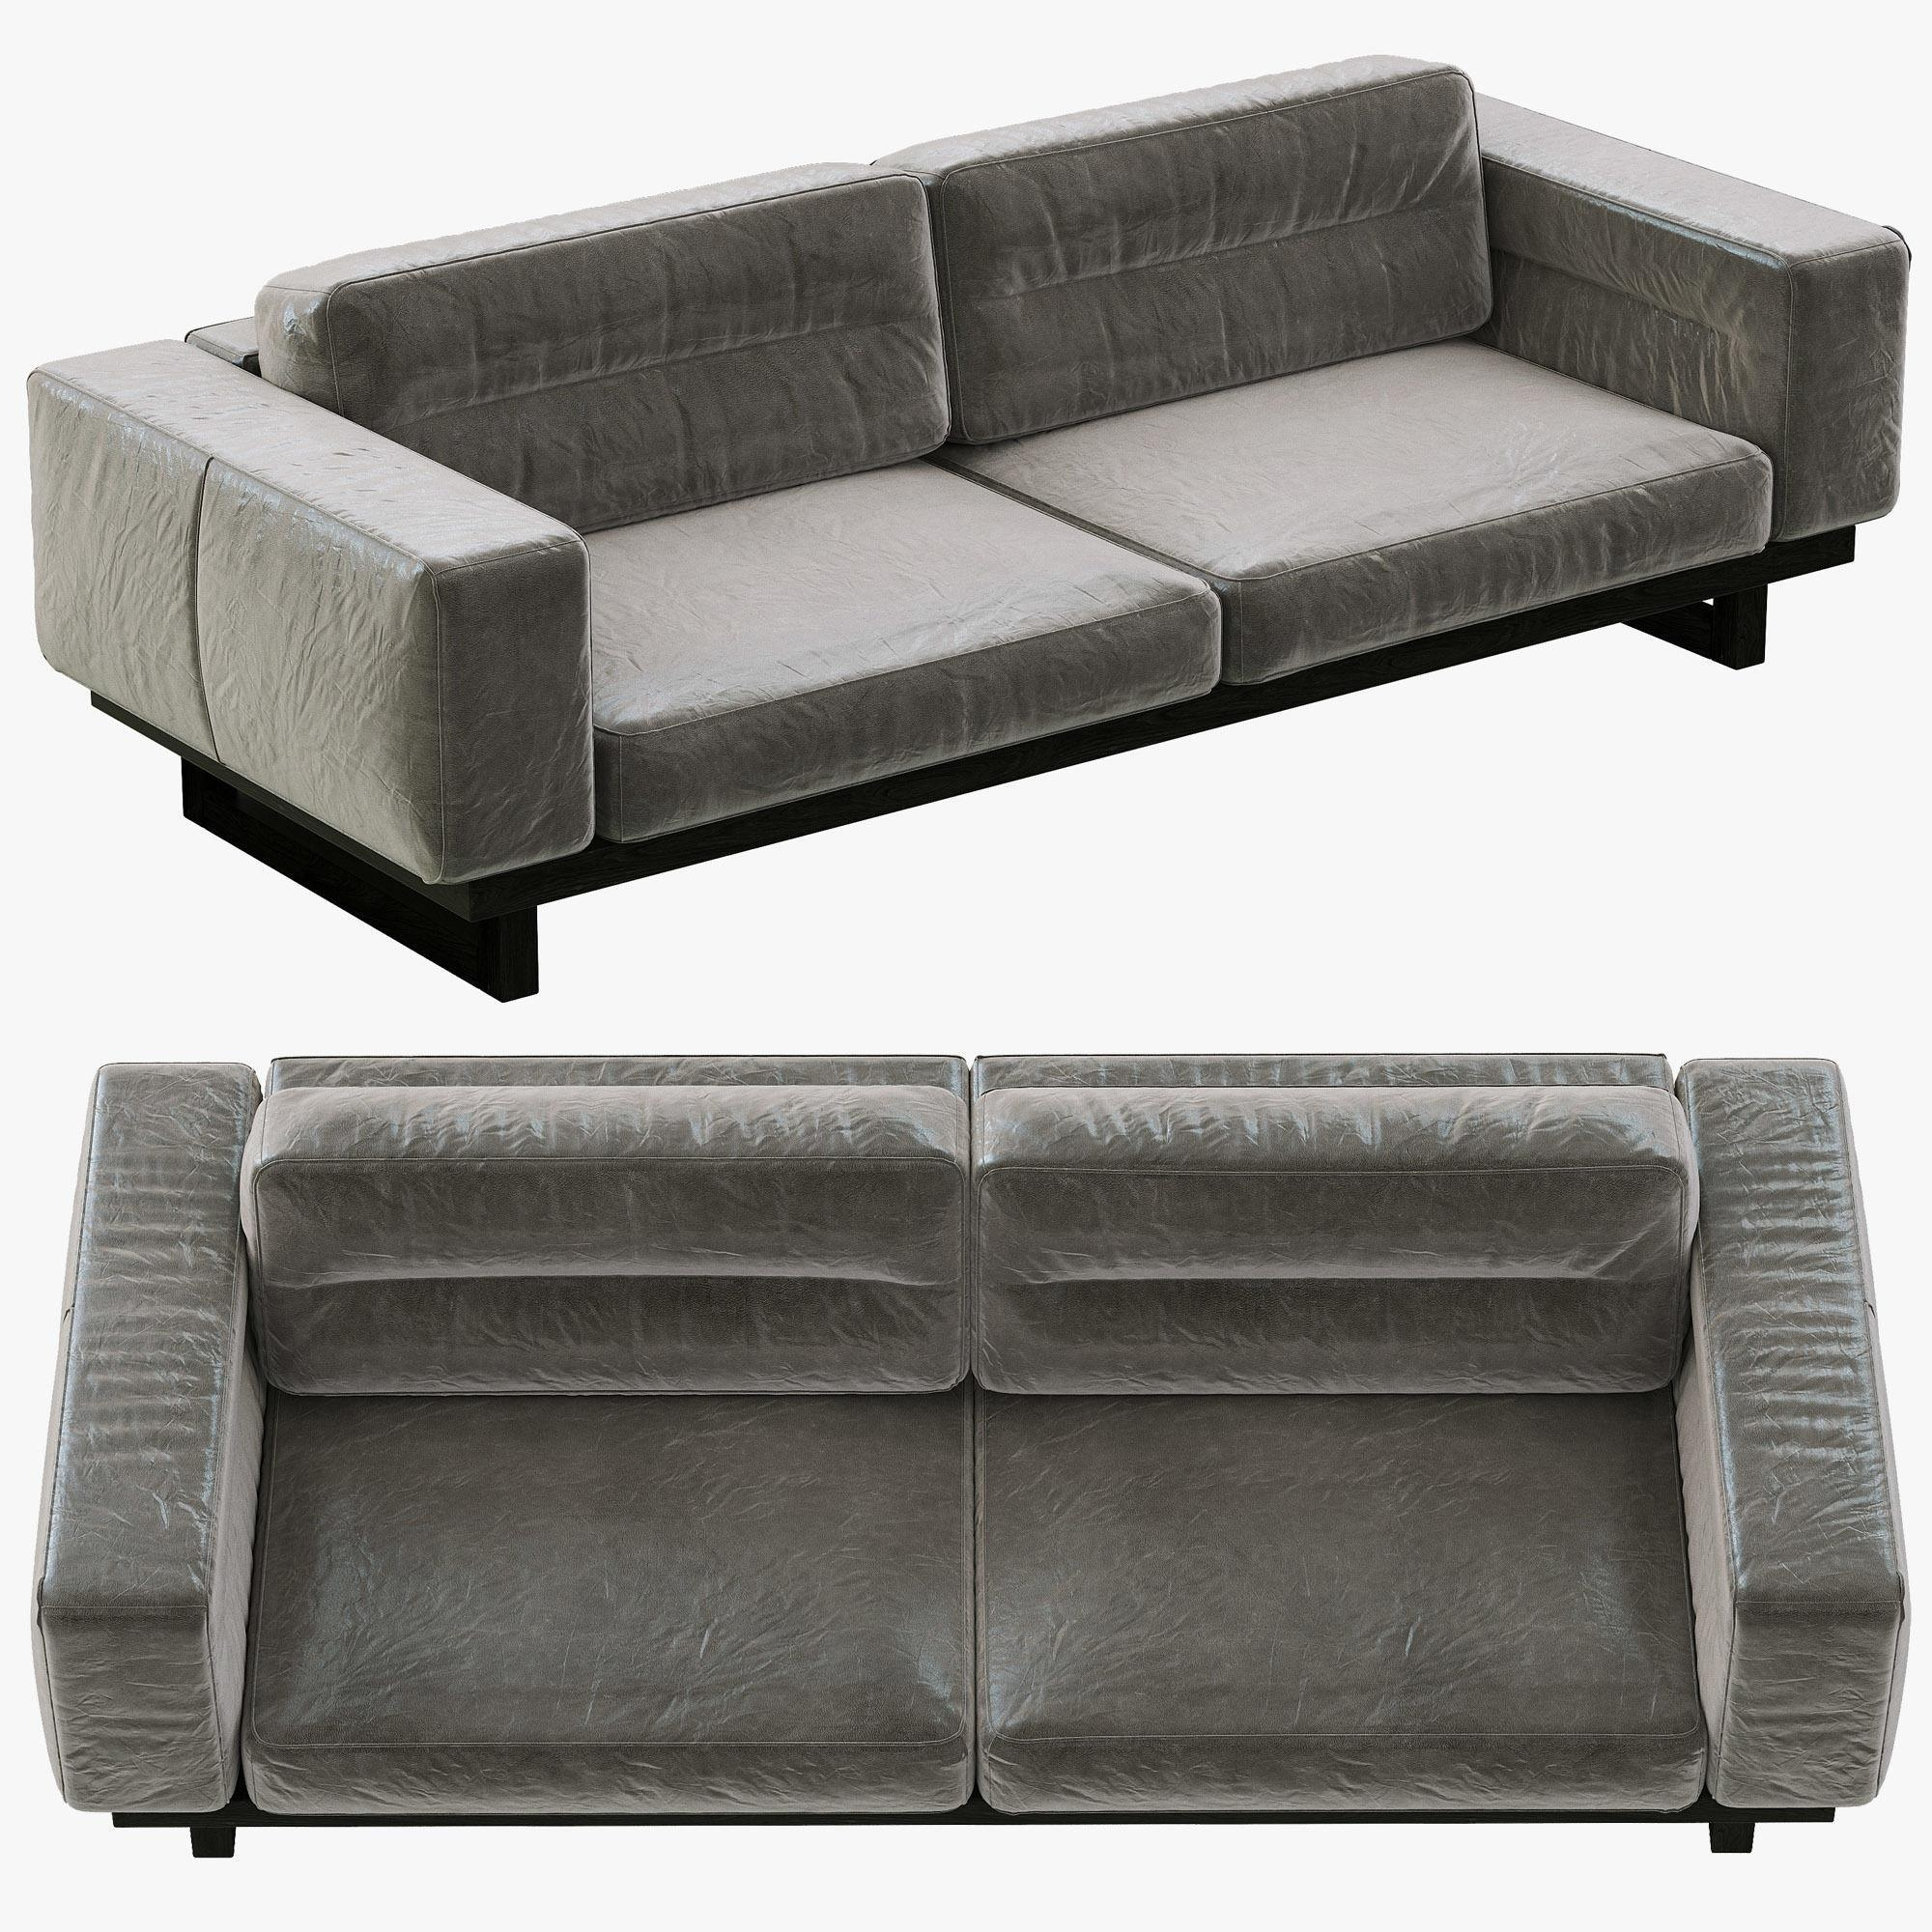 Sofas Center : Annals Of Design Extra Deep Luxe Sofas Improvised In Luxe Sofas (Image 11 of 20)